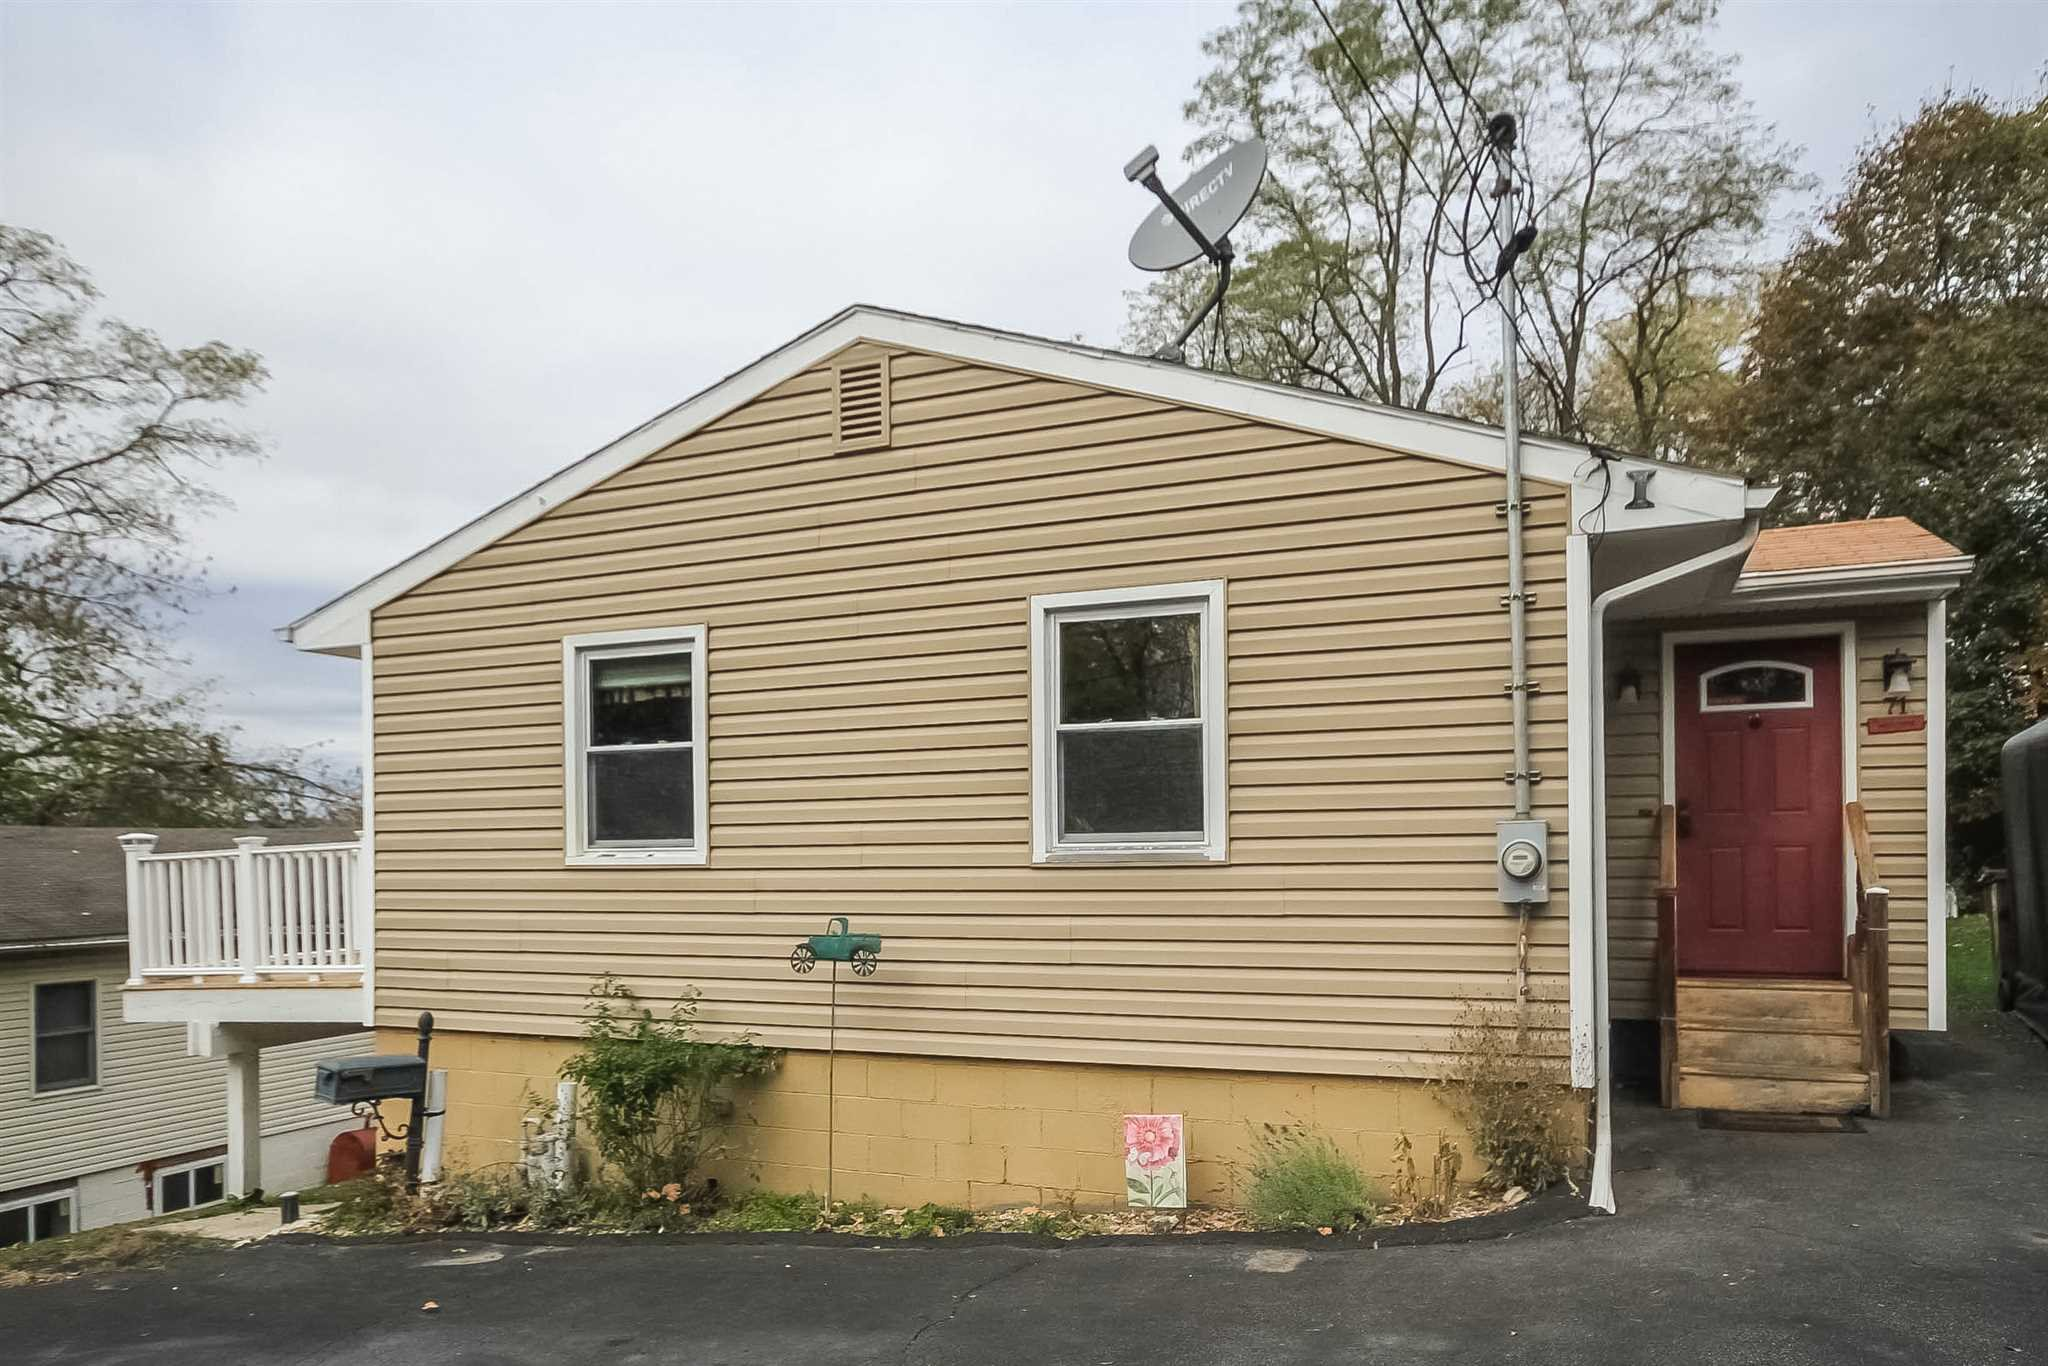 Single Family Home for Sale at 71 SHUFELDT Street 71 SHUFELDT Street Kingston, New York 12401 United States